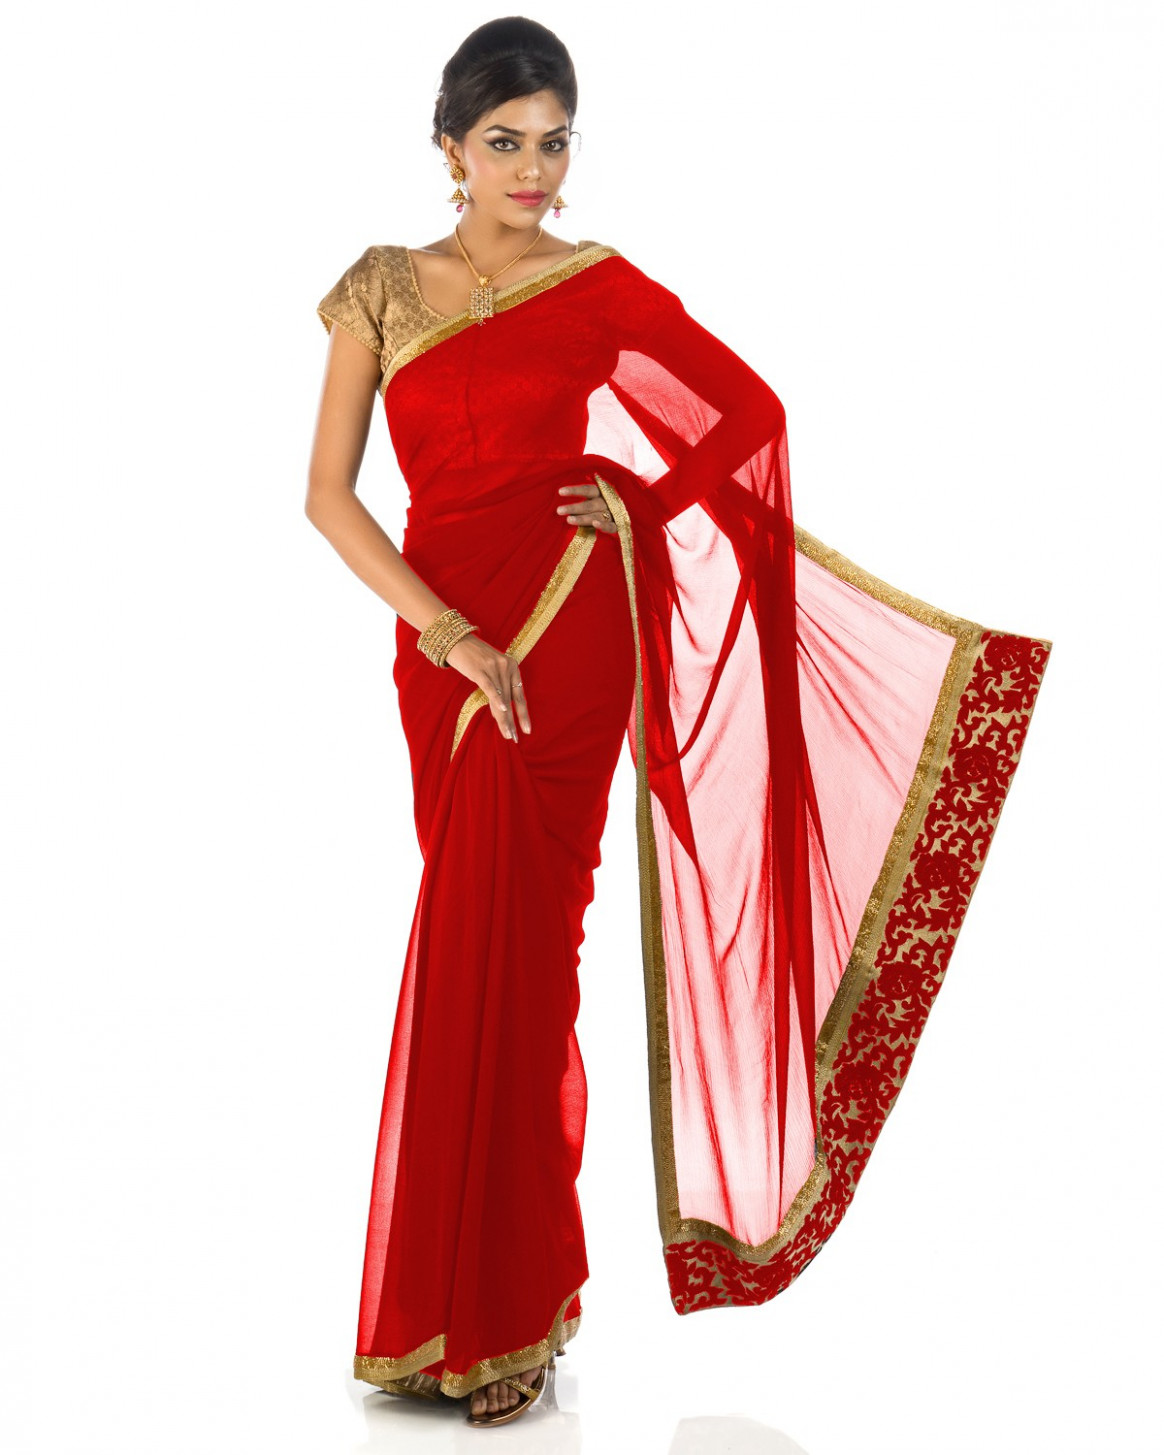 PLAIN RED COLORED PURE CHIFFON SAREE WITH GOLDEN BORDER